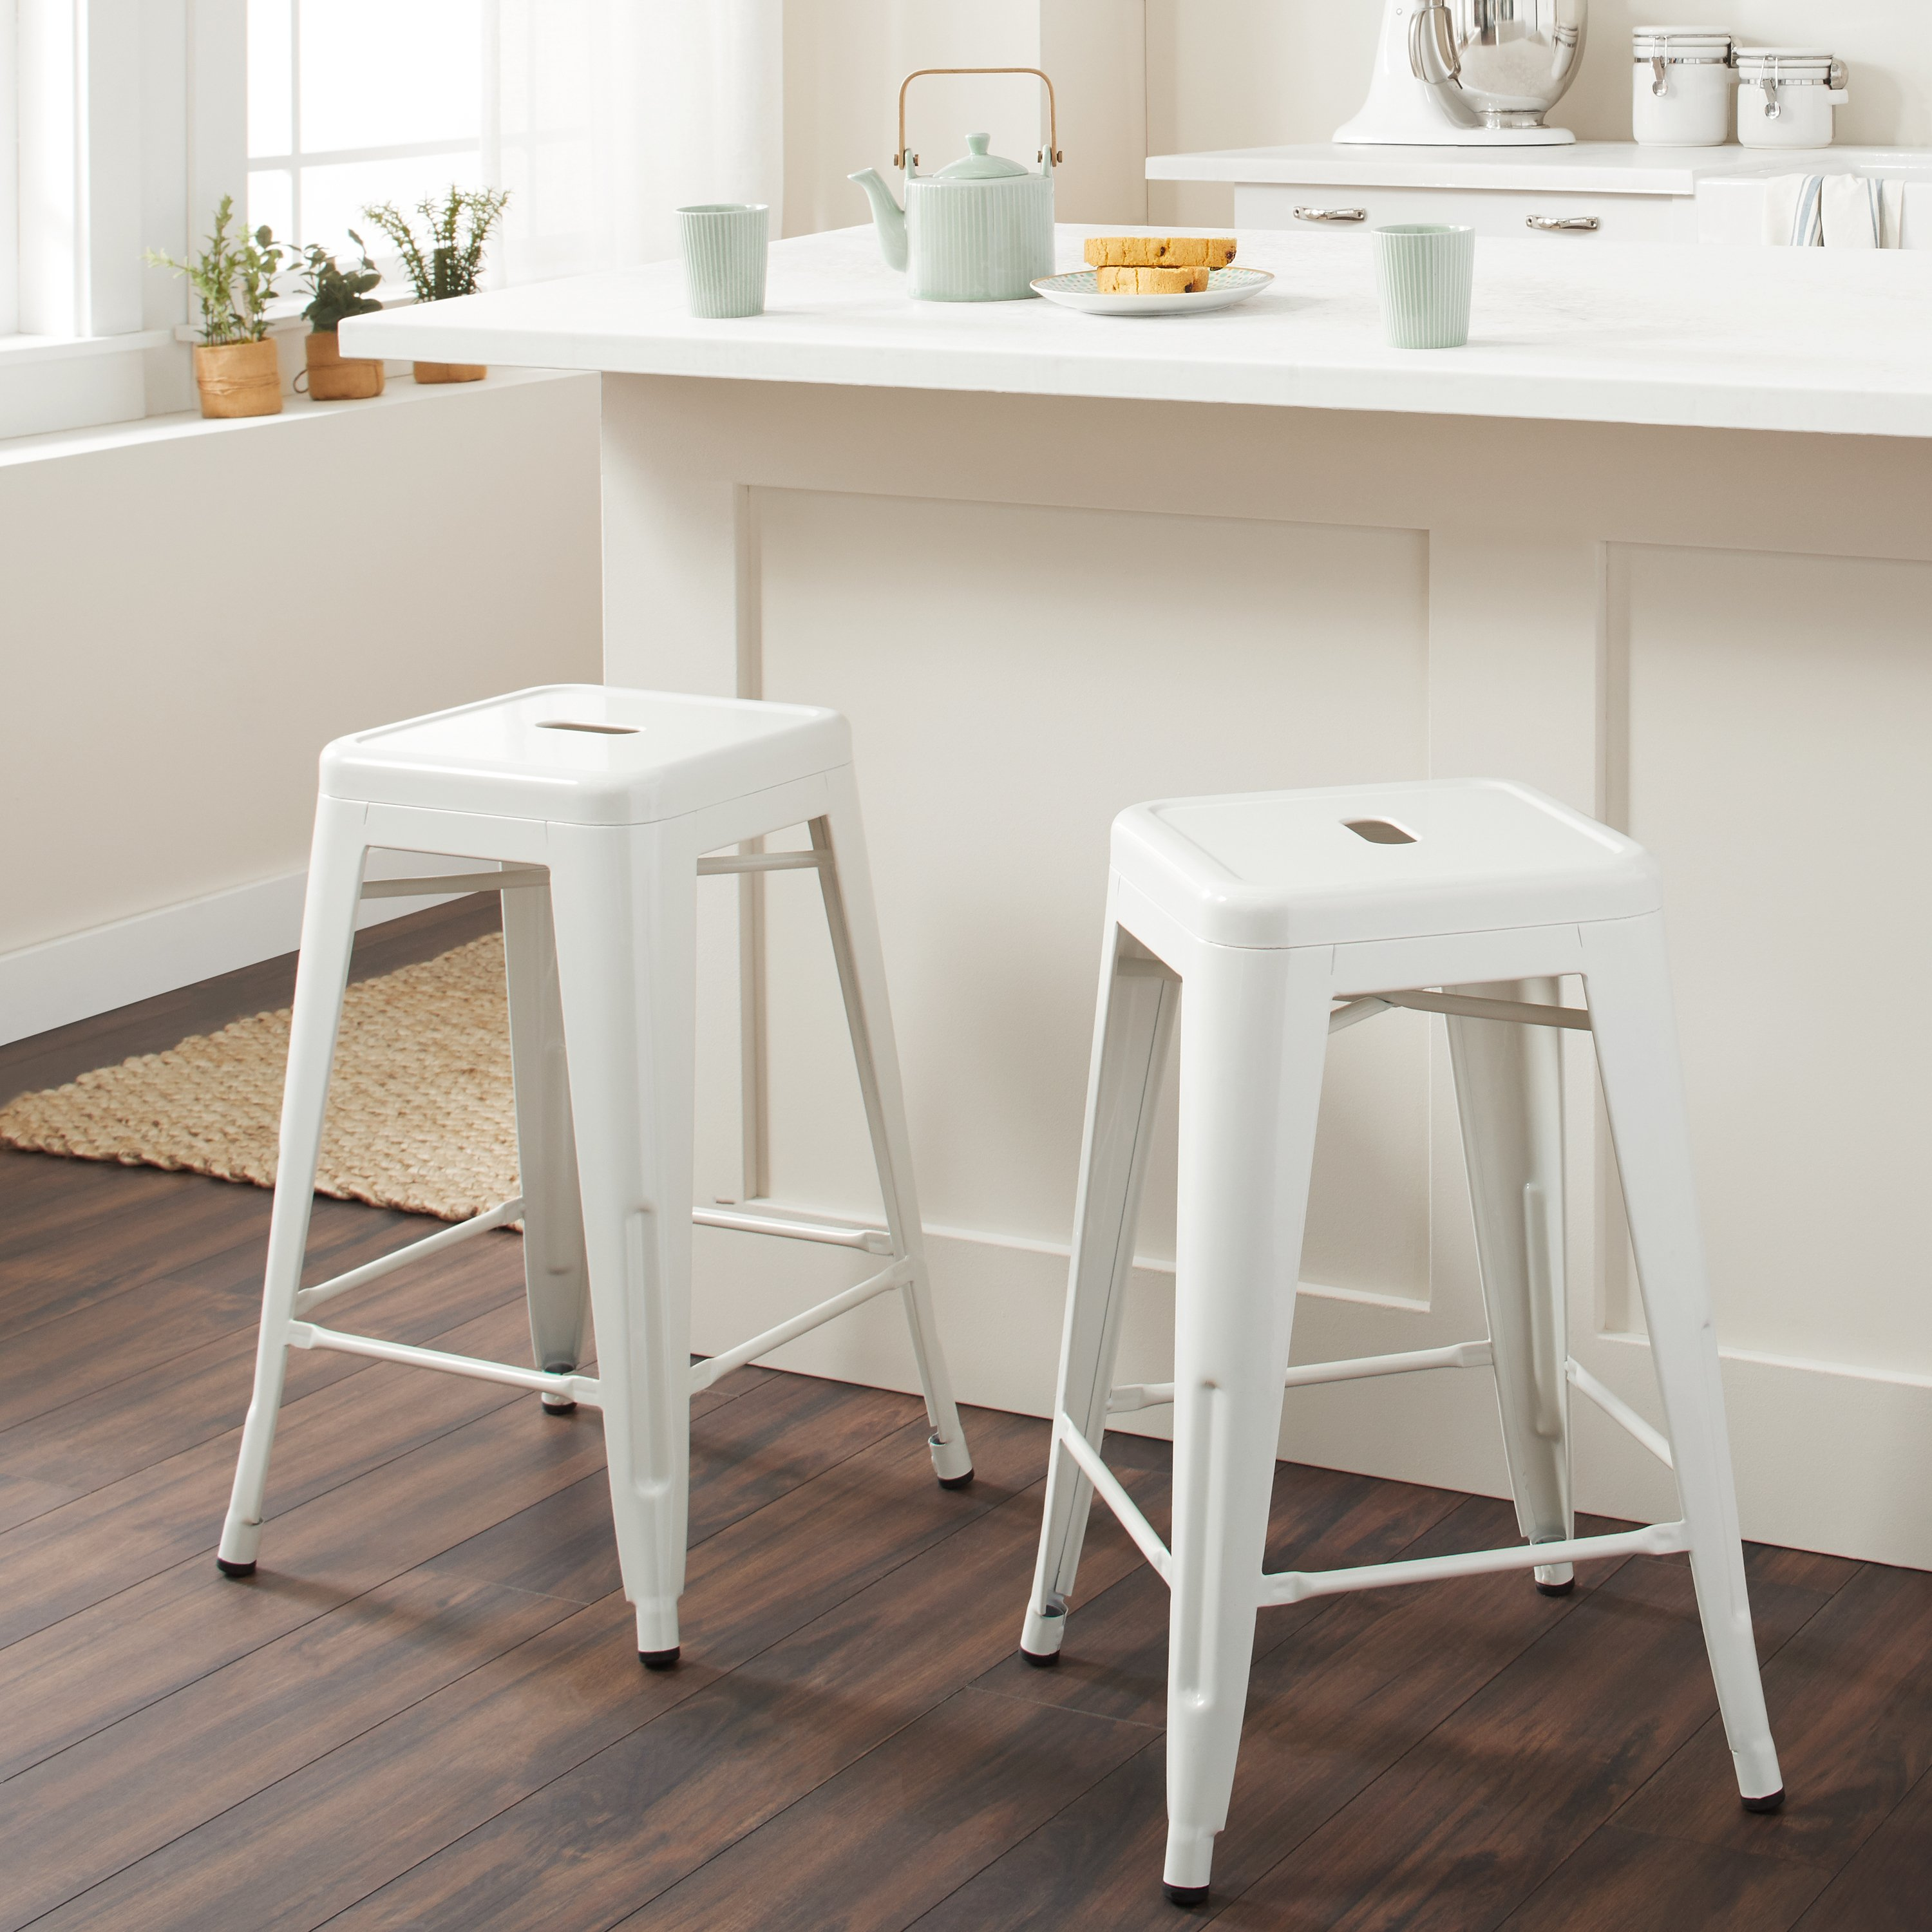 Tabourets Walmart Tabouret 24 Inch White Metal Counter Stools Set Of 2 Walmart